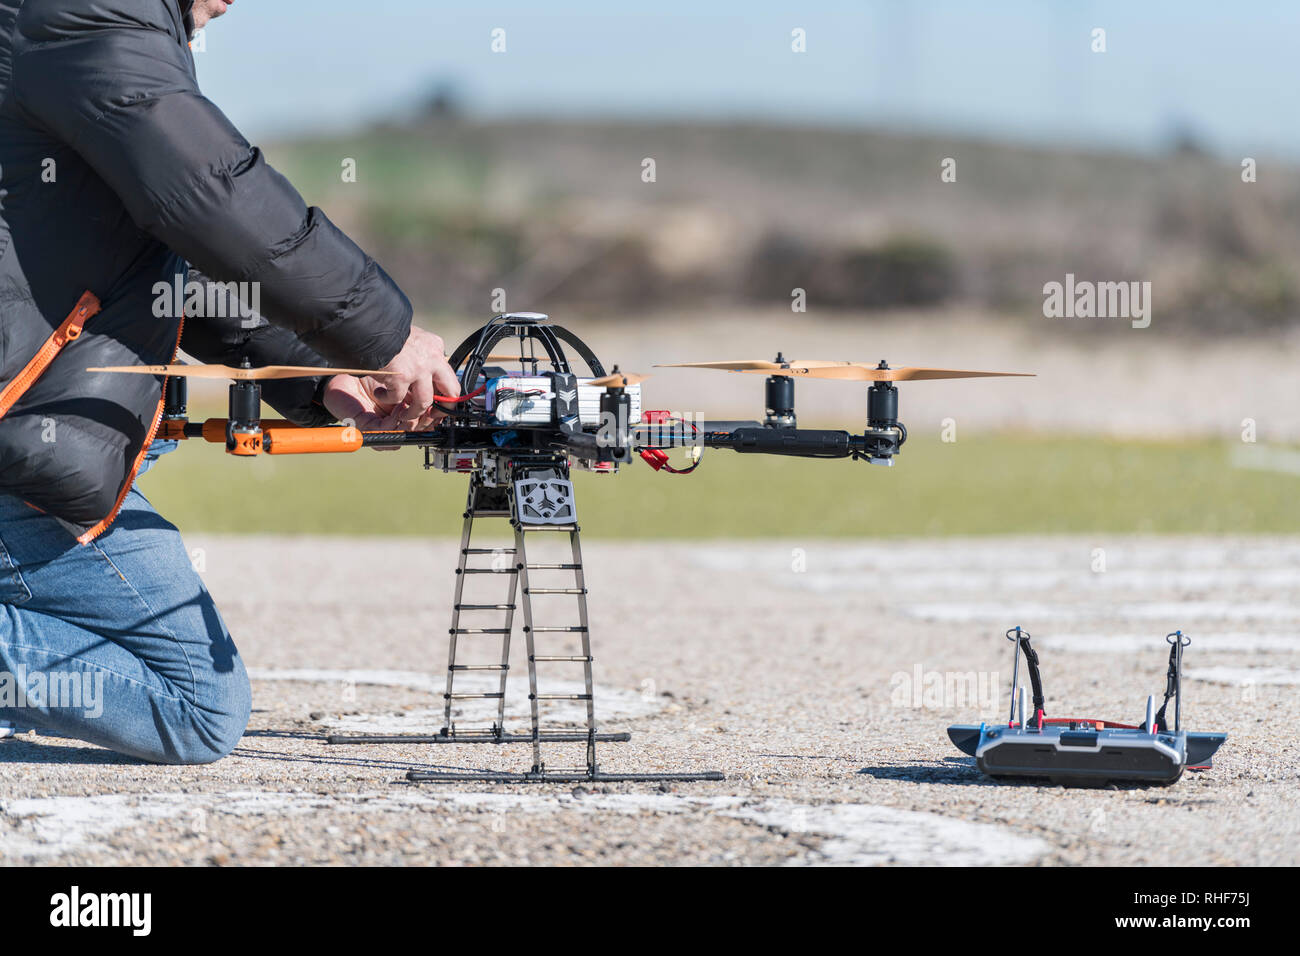 Professional drone being connected before a flight session - Stock Image